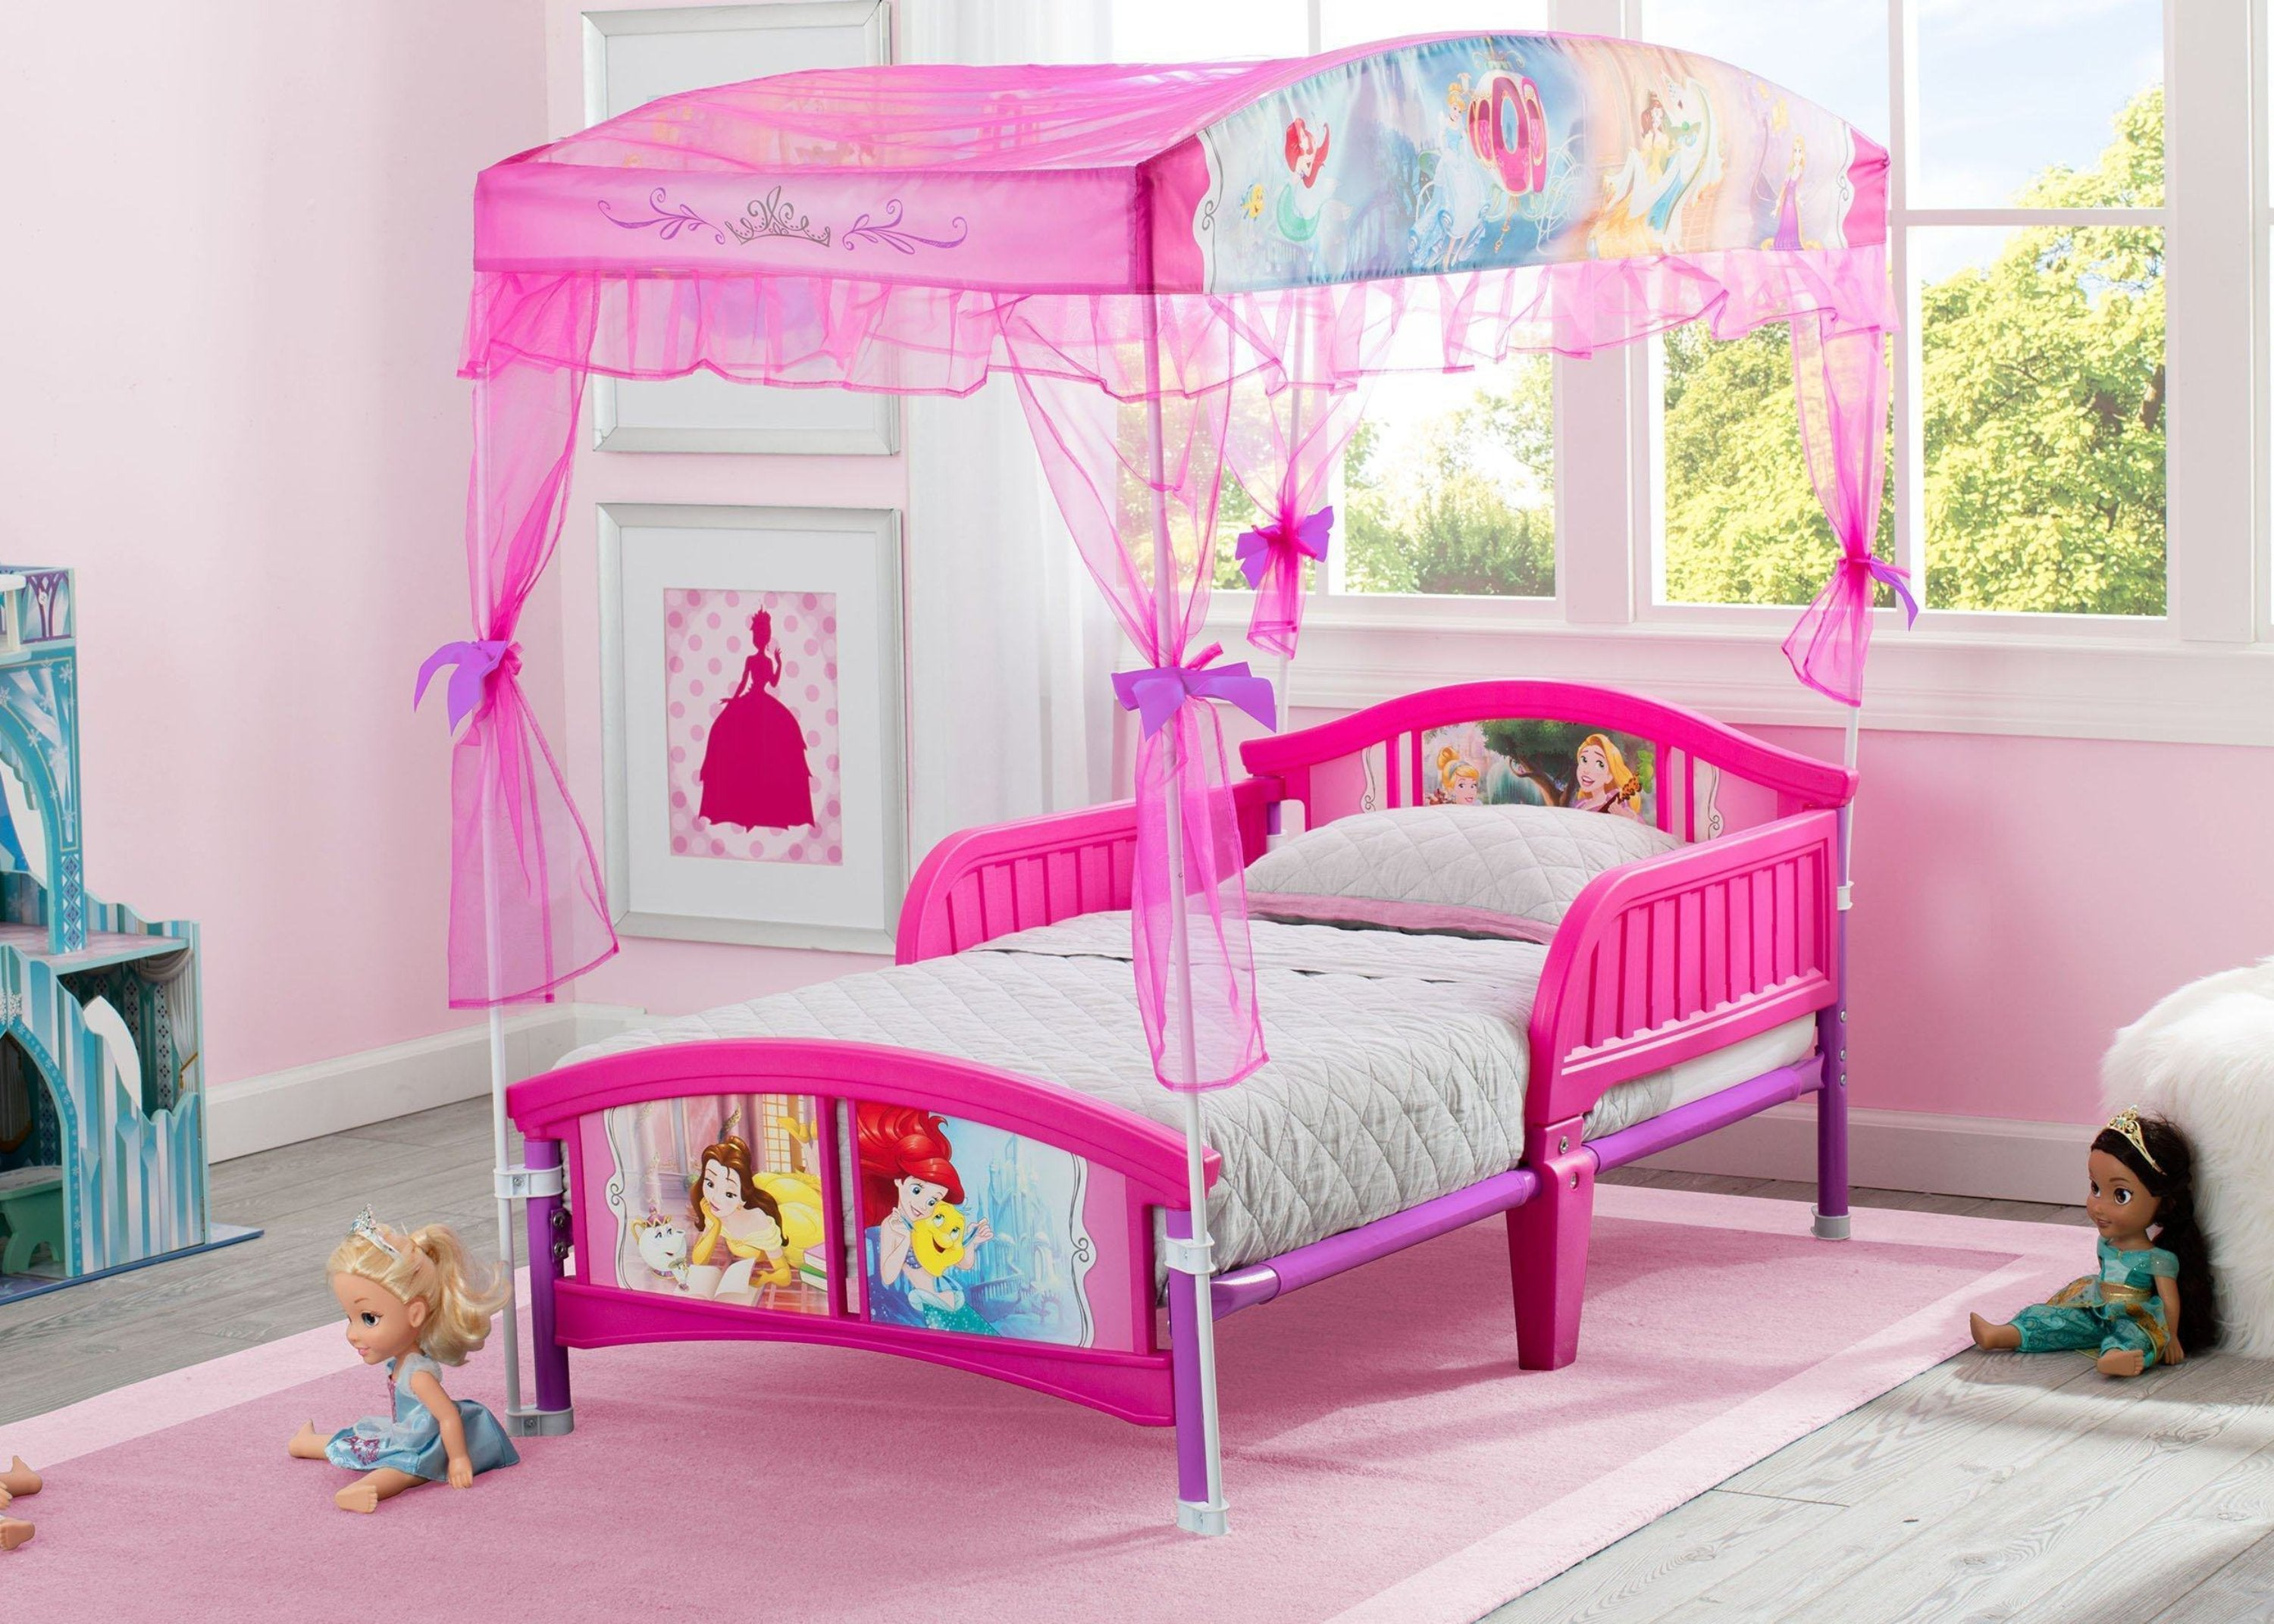 - Princess Canopy Toddler Bed – Delta Children